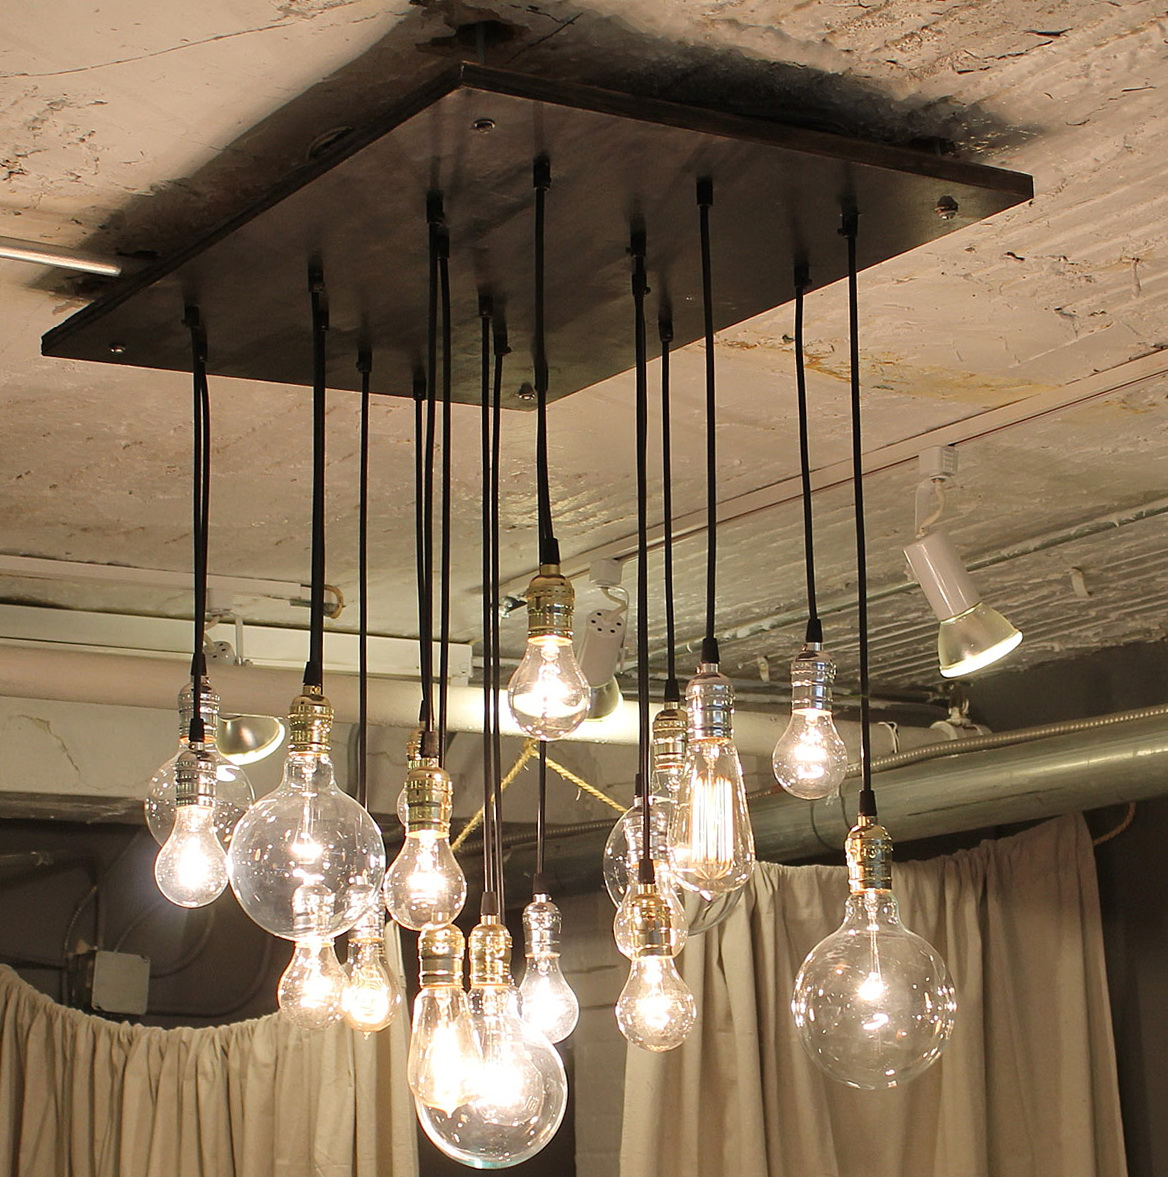 kfzu etsy chandelier light edison bulb il market upgrade